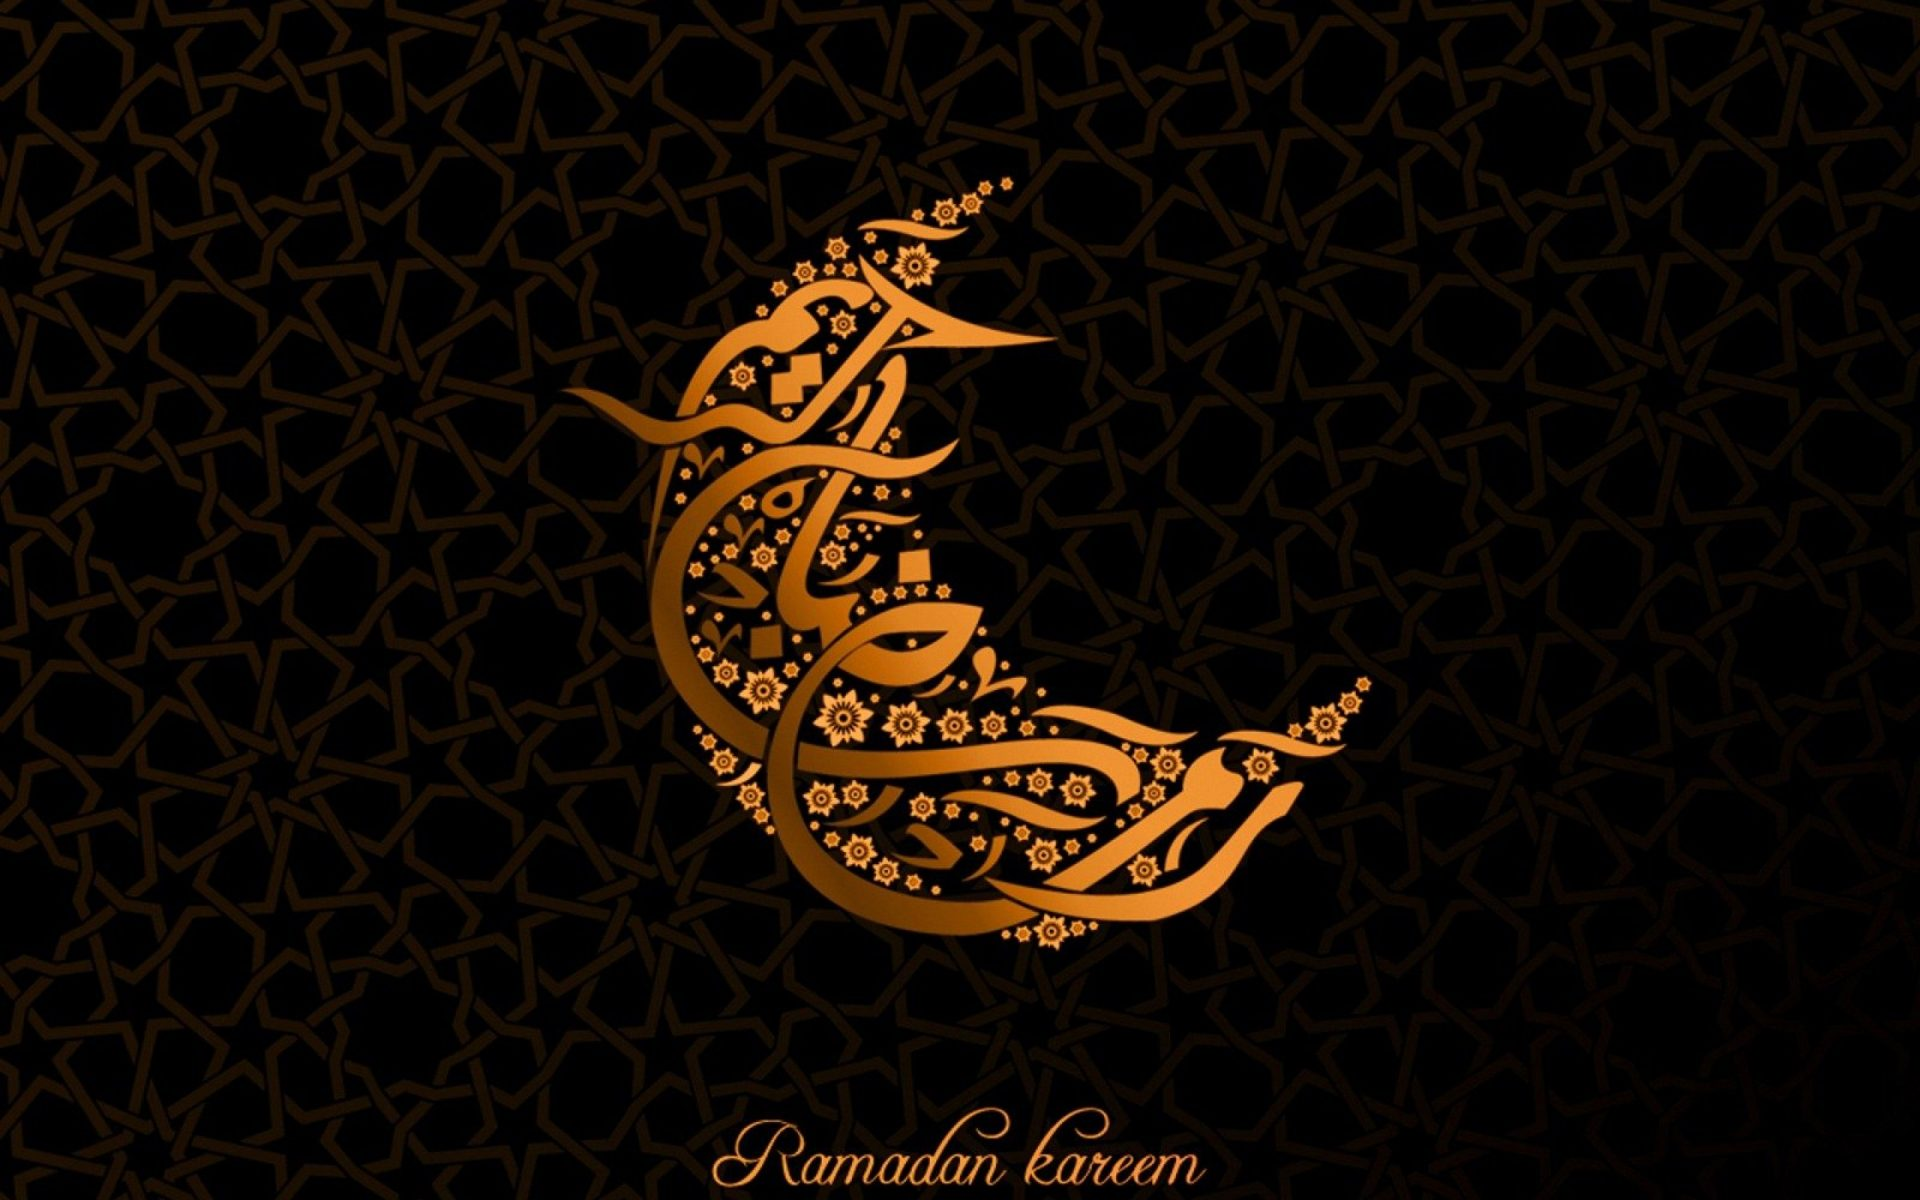 Ramadan mubarak u islamic finance council uk